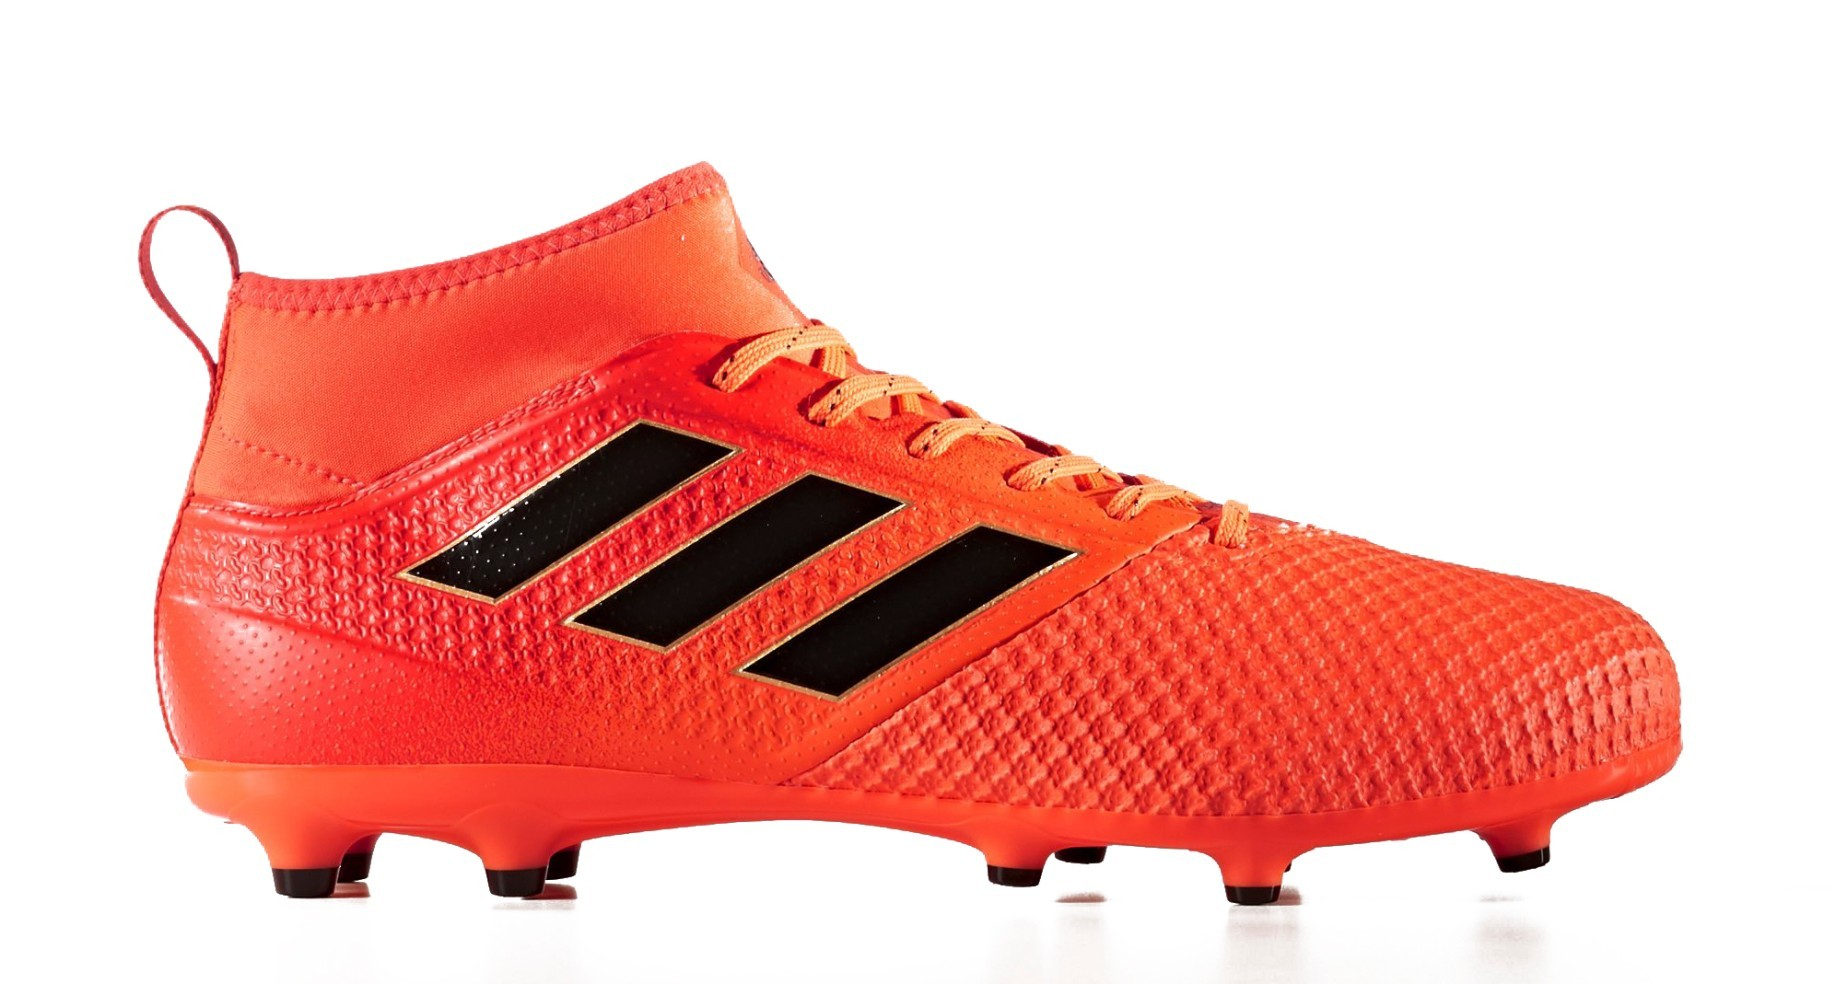 outlet store 393d7 32a82 Adidas Football boots Ace 17.3 FG Pyro Storm Pack colore Orange - Adidas -  SportIT.com